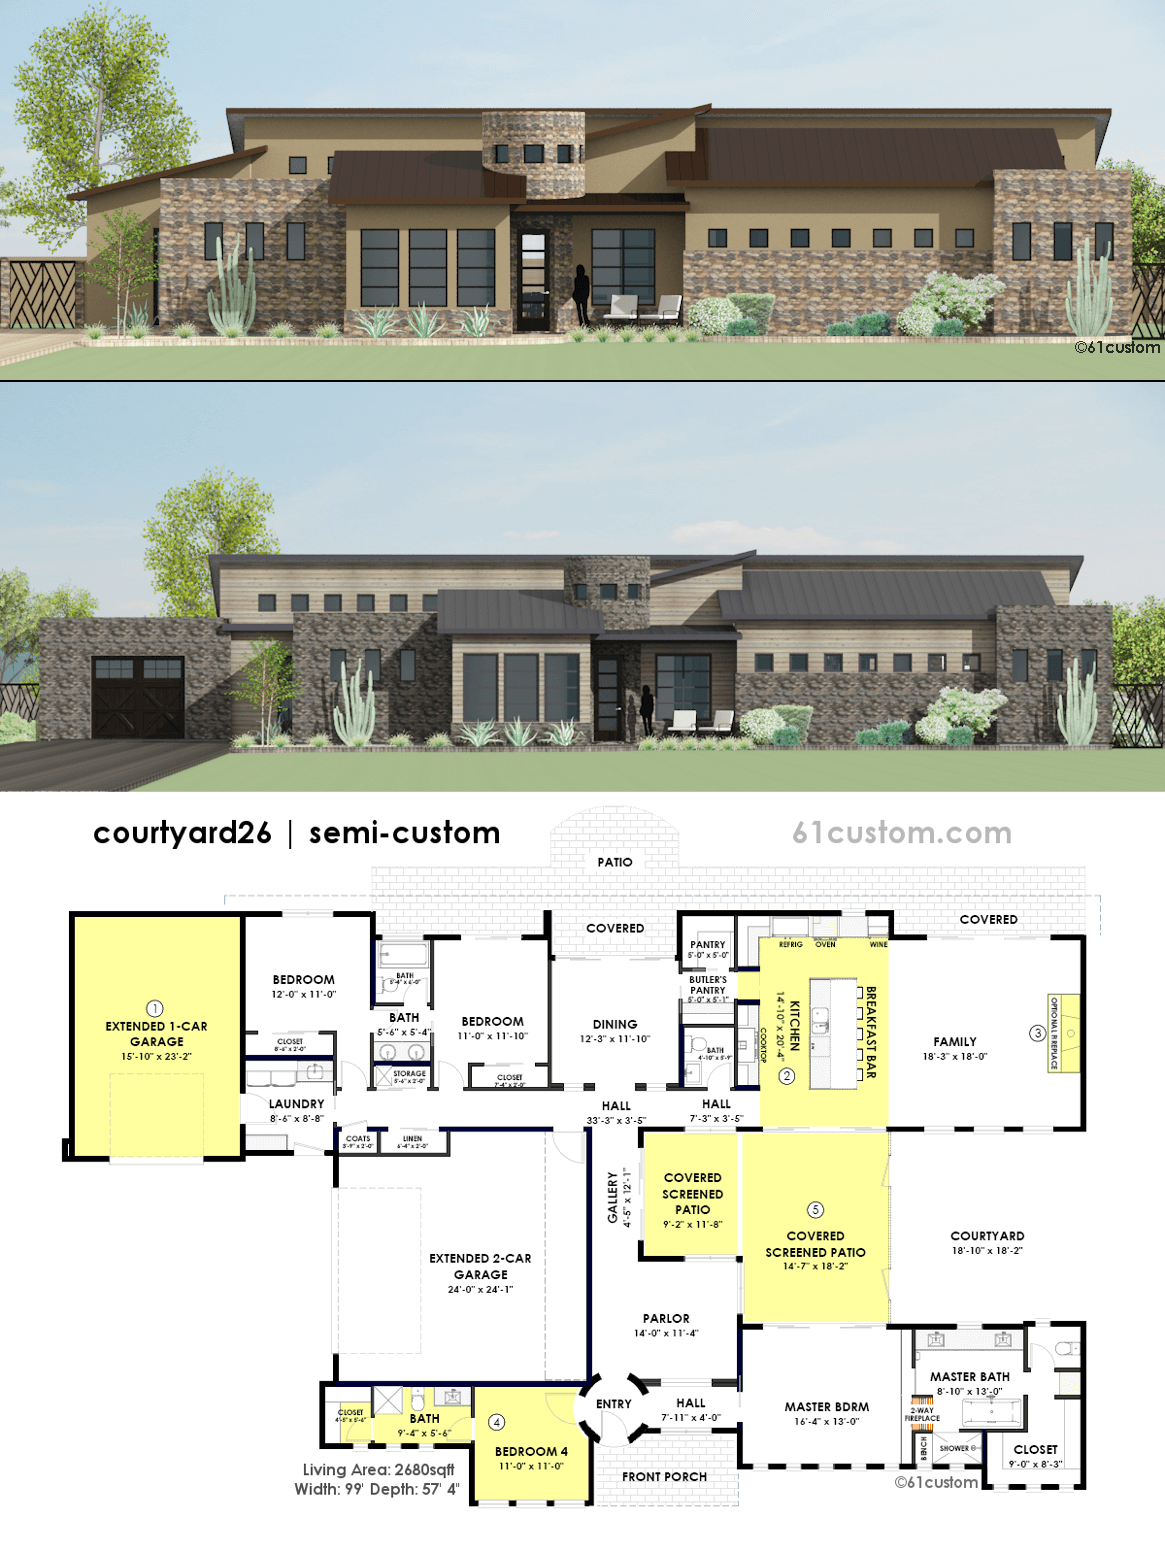 Contemporary side courtyard house plan 61custom Modern contemporary house plans for sale